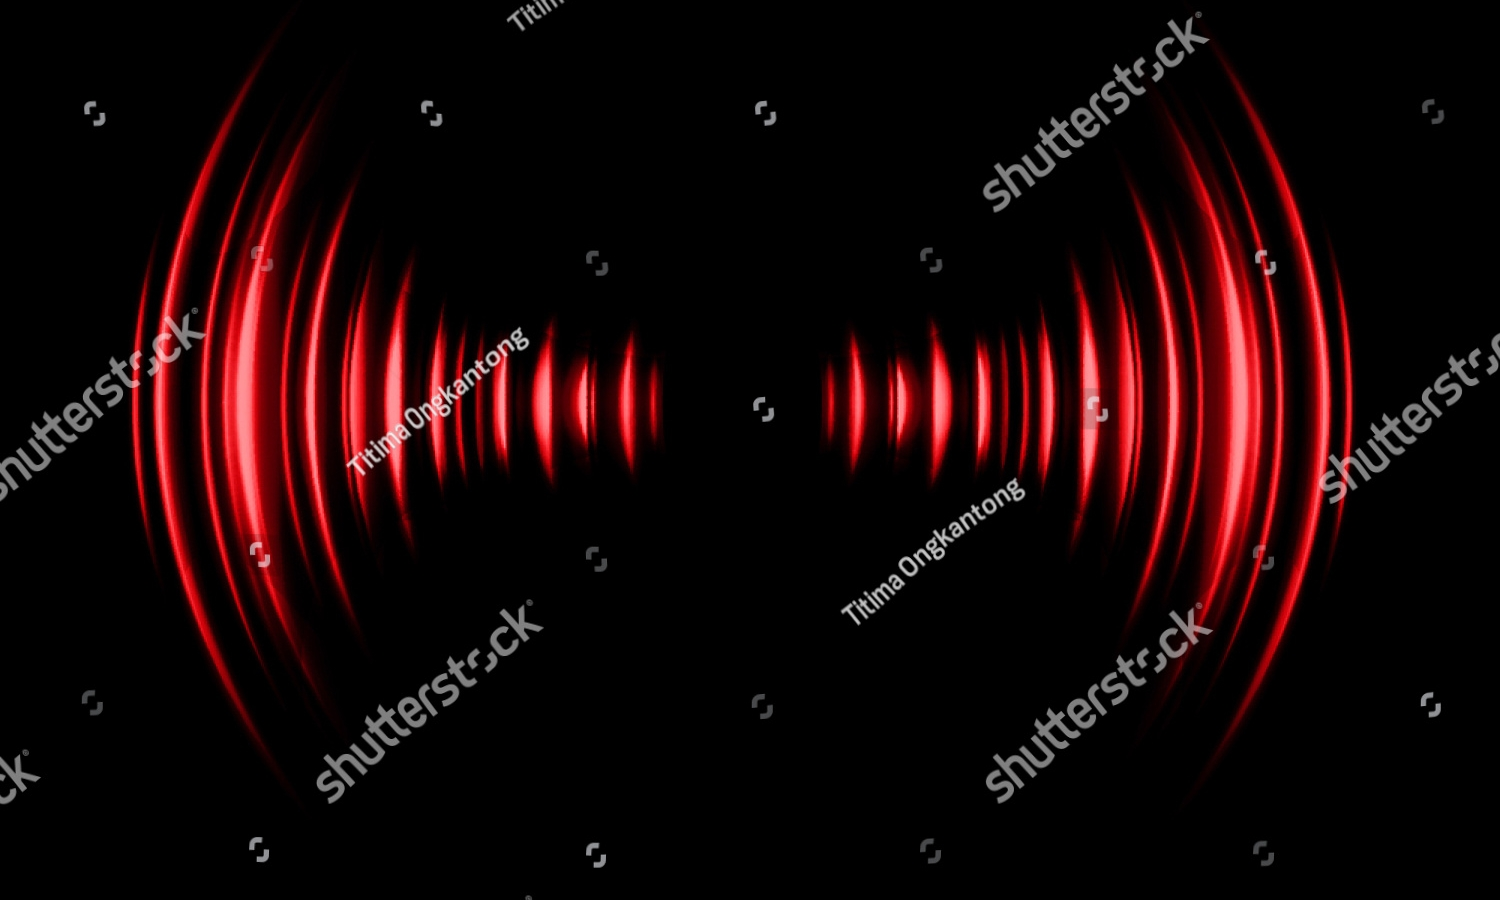 stock-vector-sound-waves-oscillating-dark-red-light-abstract-technology-background-vector-517922860.jpg